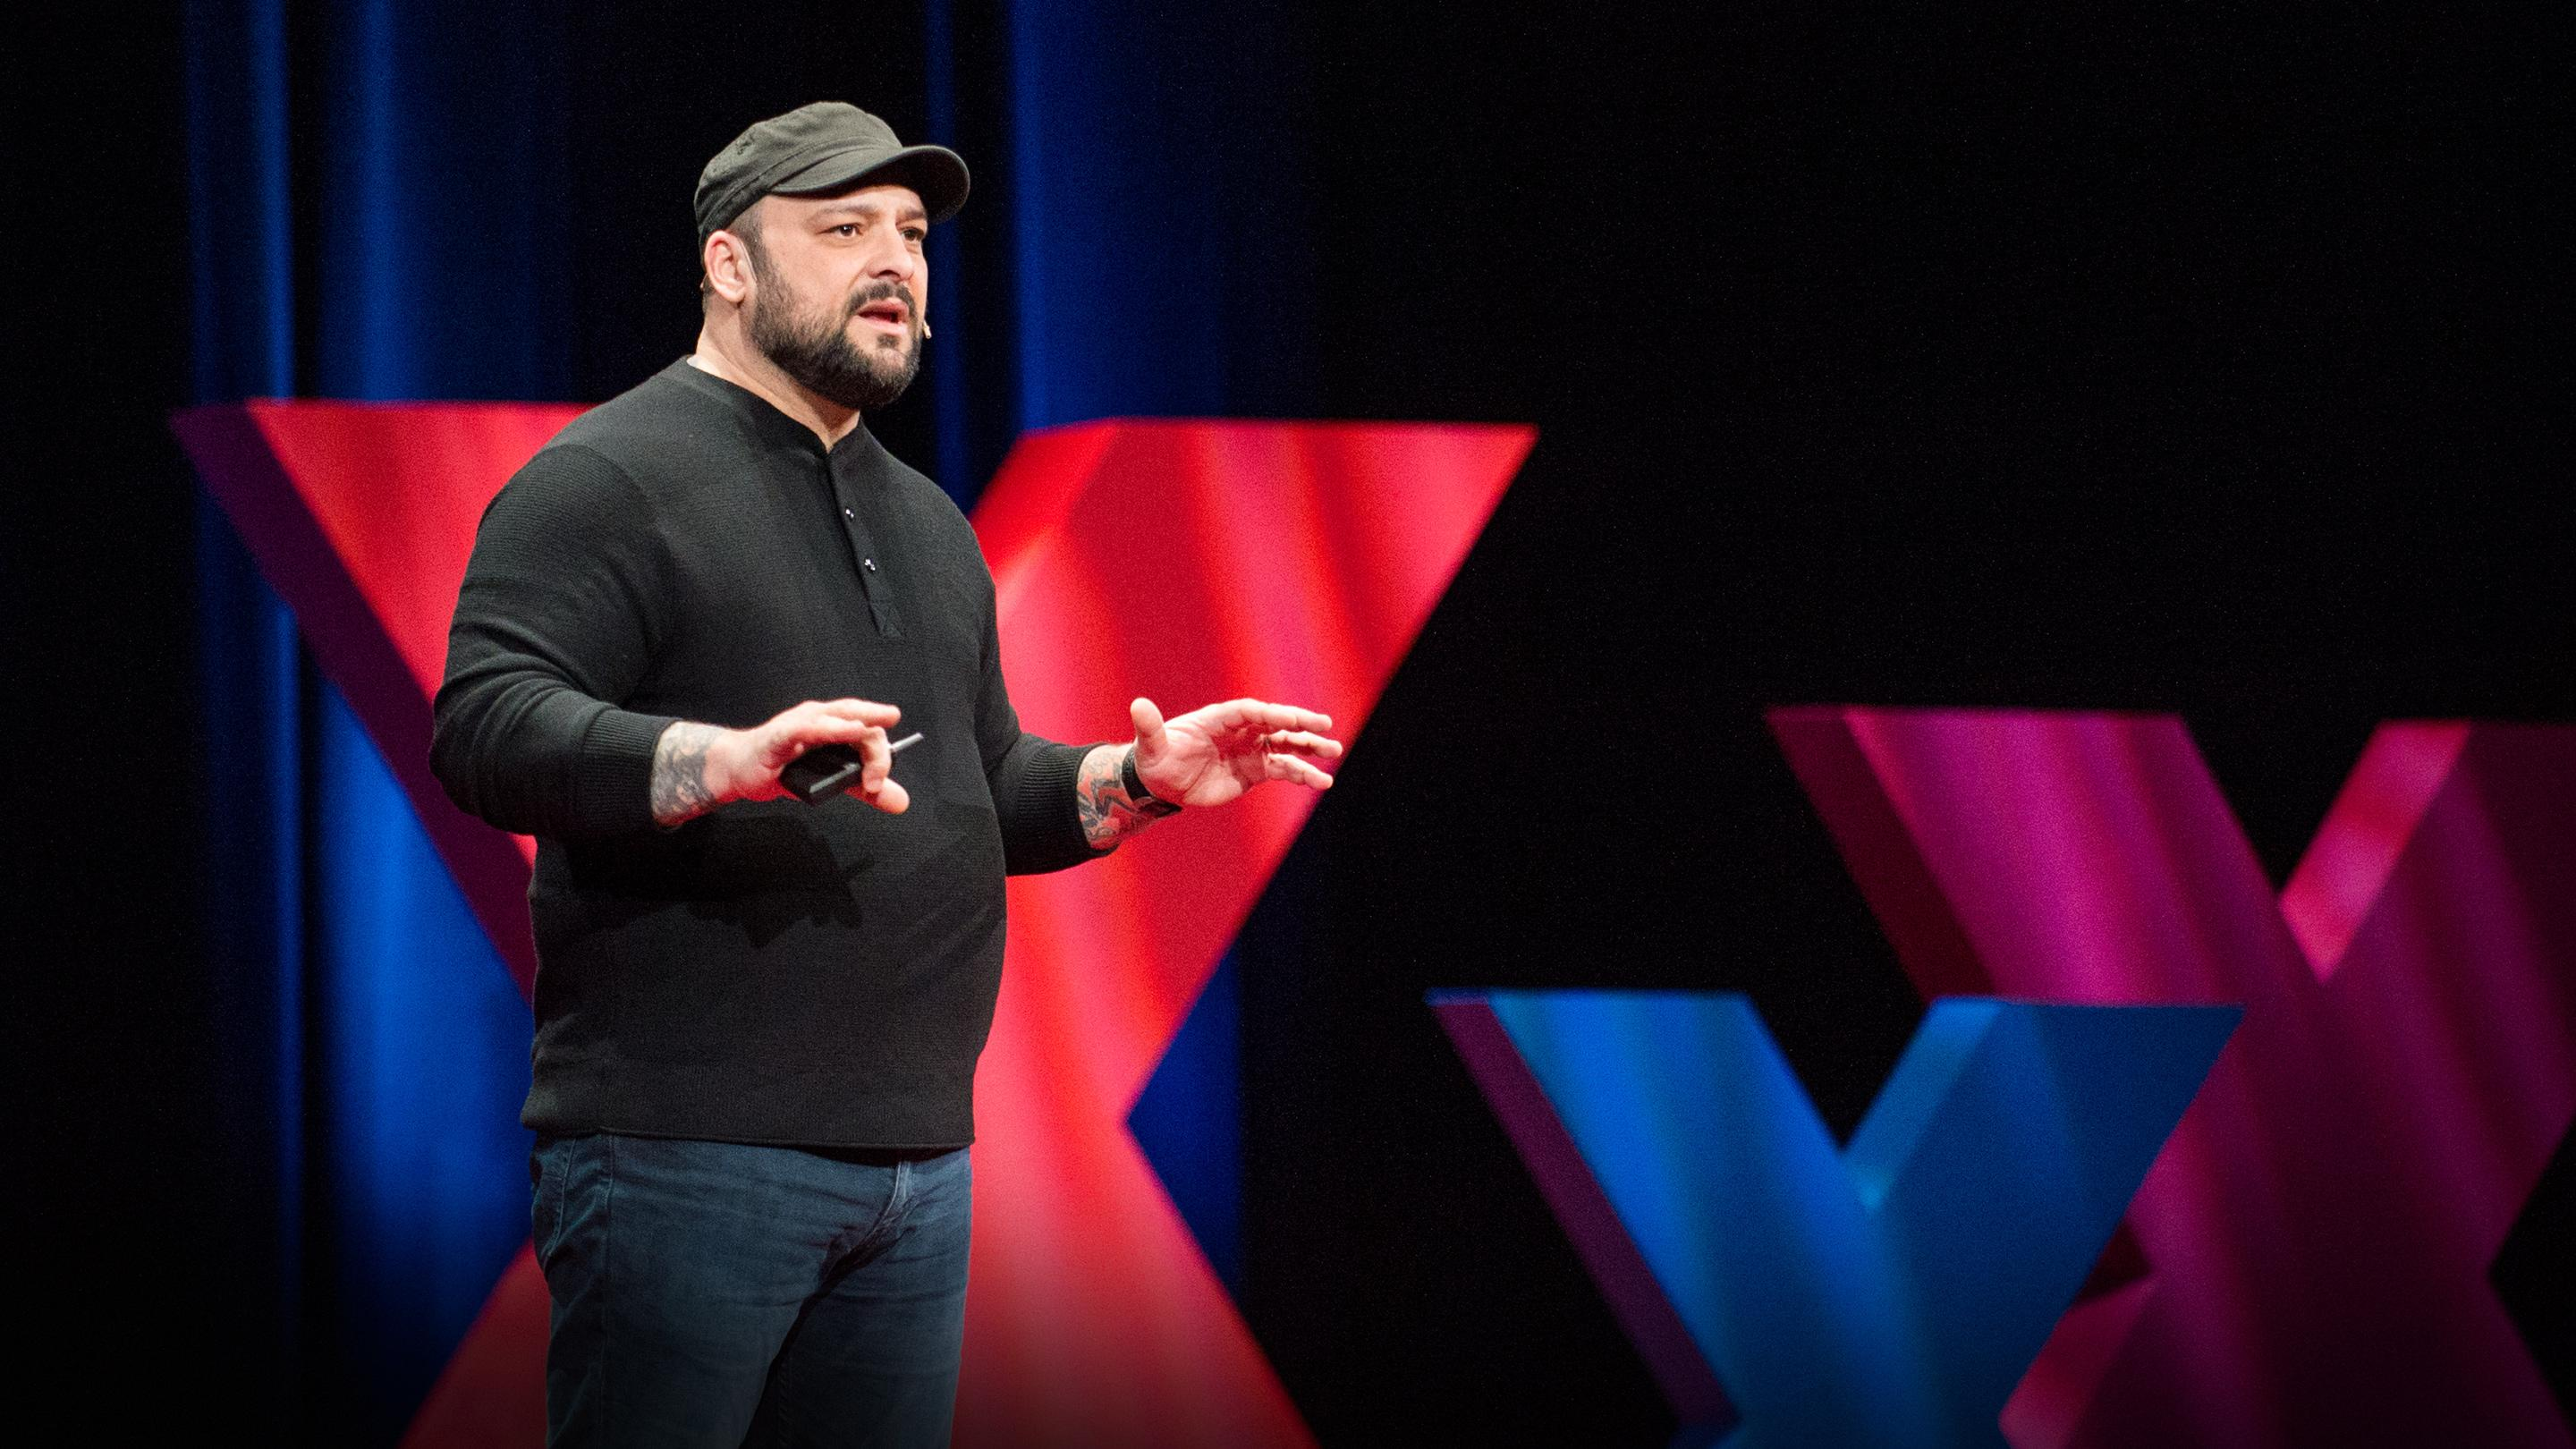 My descent into America's neo-Nazi movement -- and how I got out | Christian Picciolini